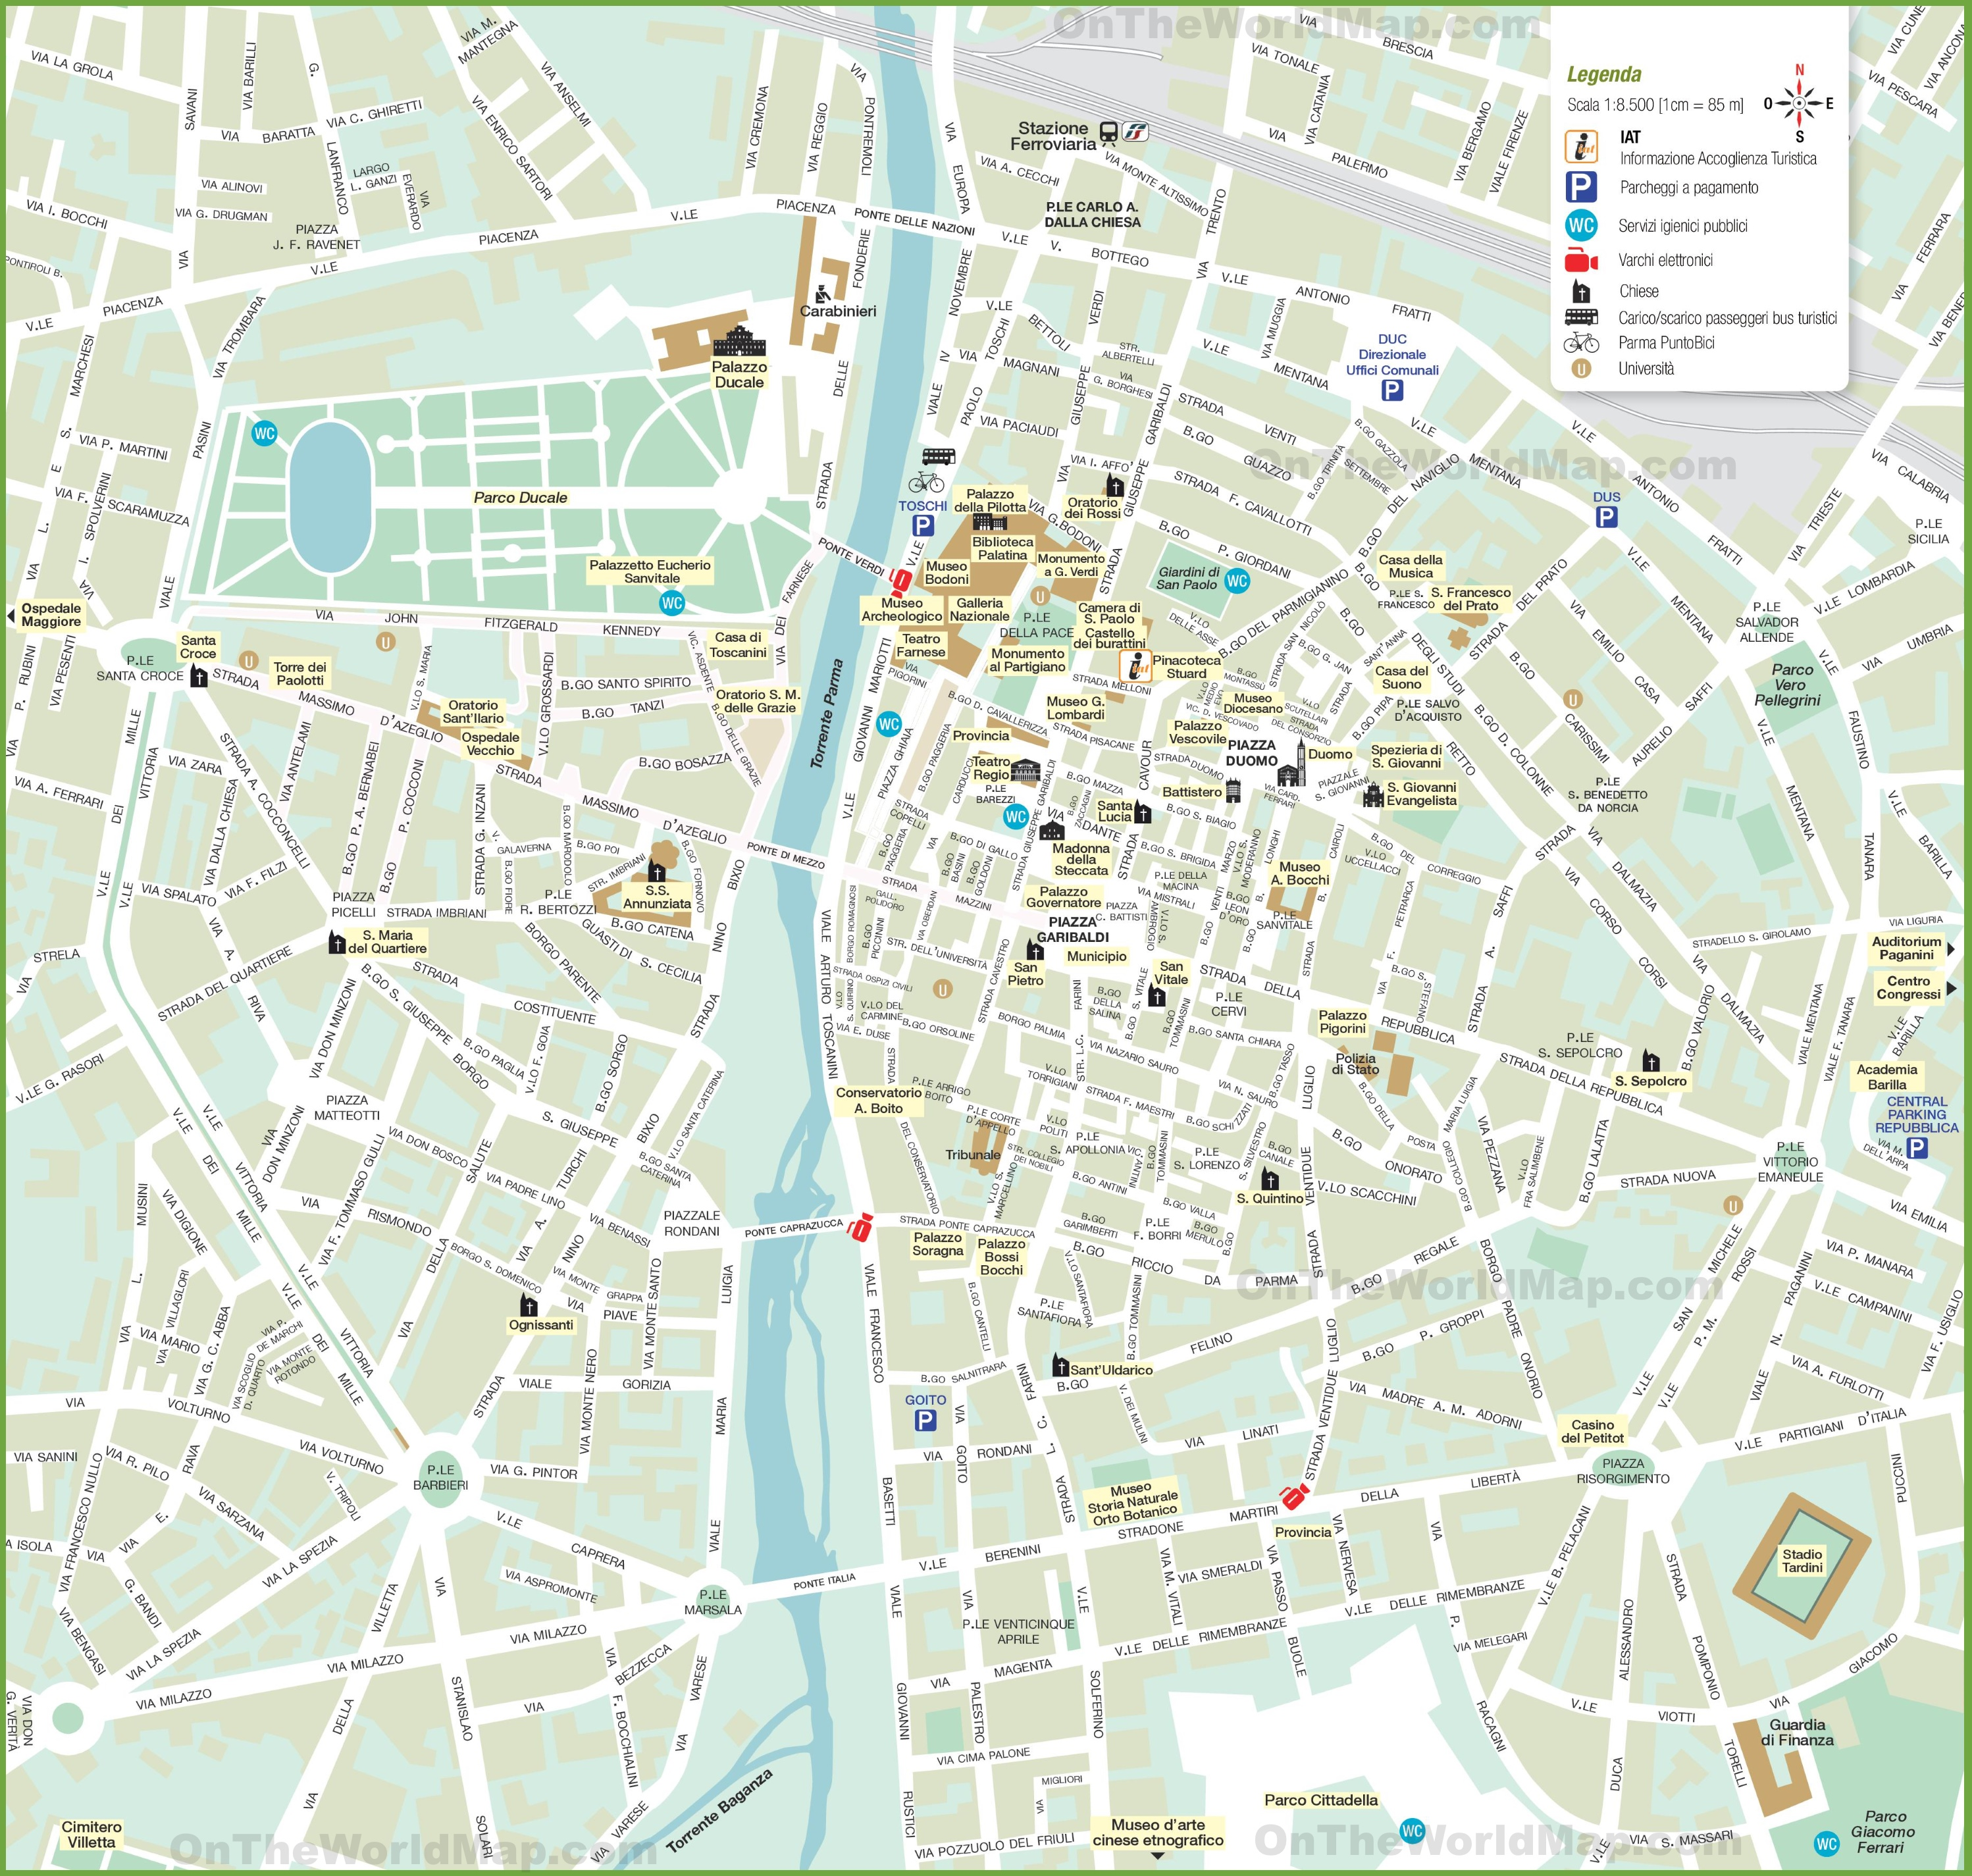 Tourist map of Parma city centre on home to go, safe to go, fan to go, kitchen to go, countries to go, events to go, education to go, air conditioning to go, sauna to go, radio to go, history to go, parks to go, desk to go, restaurants to go, garden to go, travel to go, garage to go, library to go,